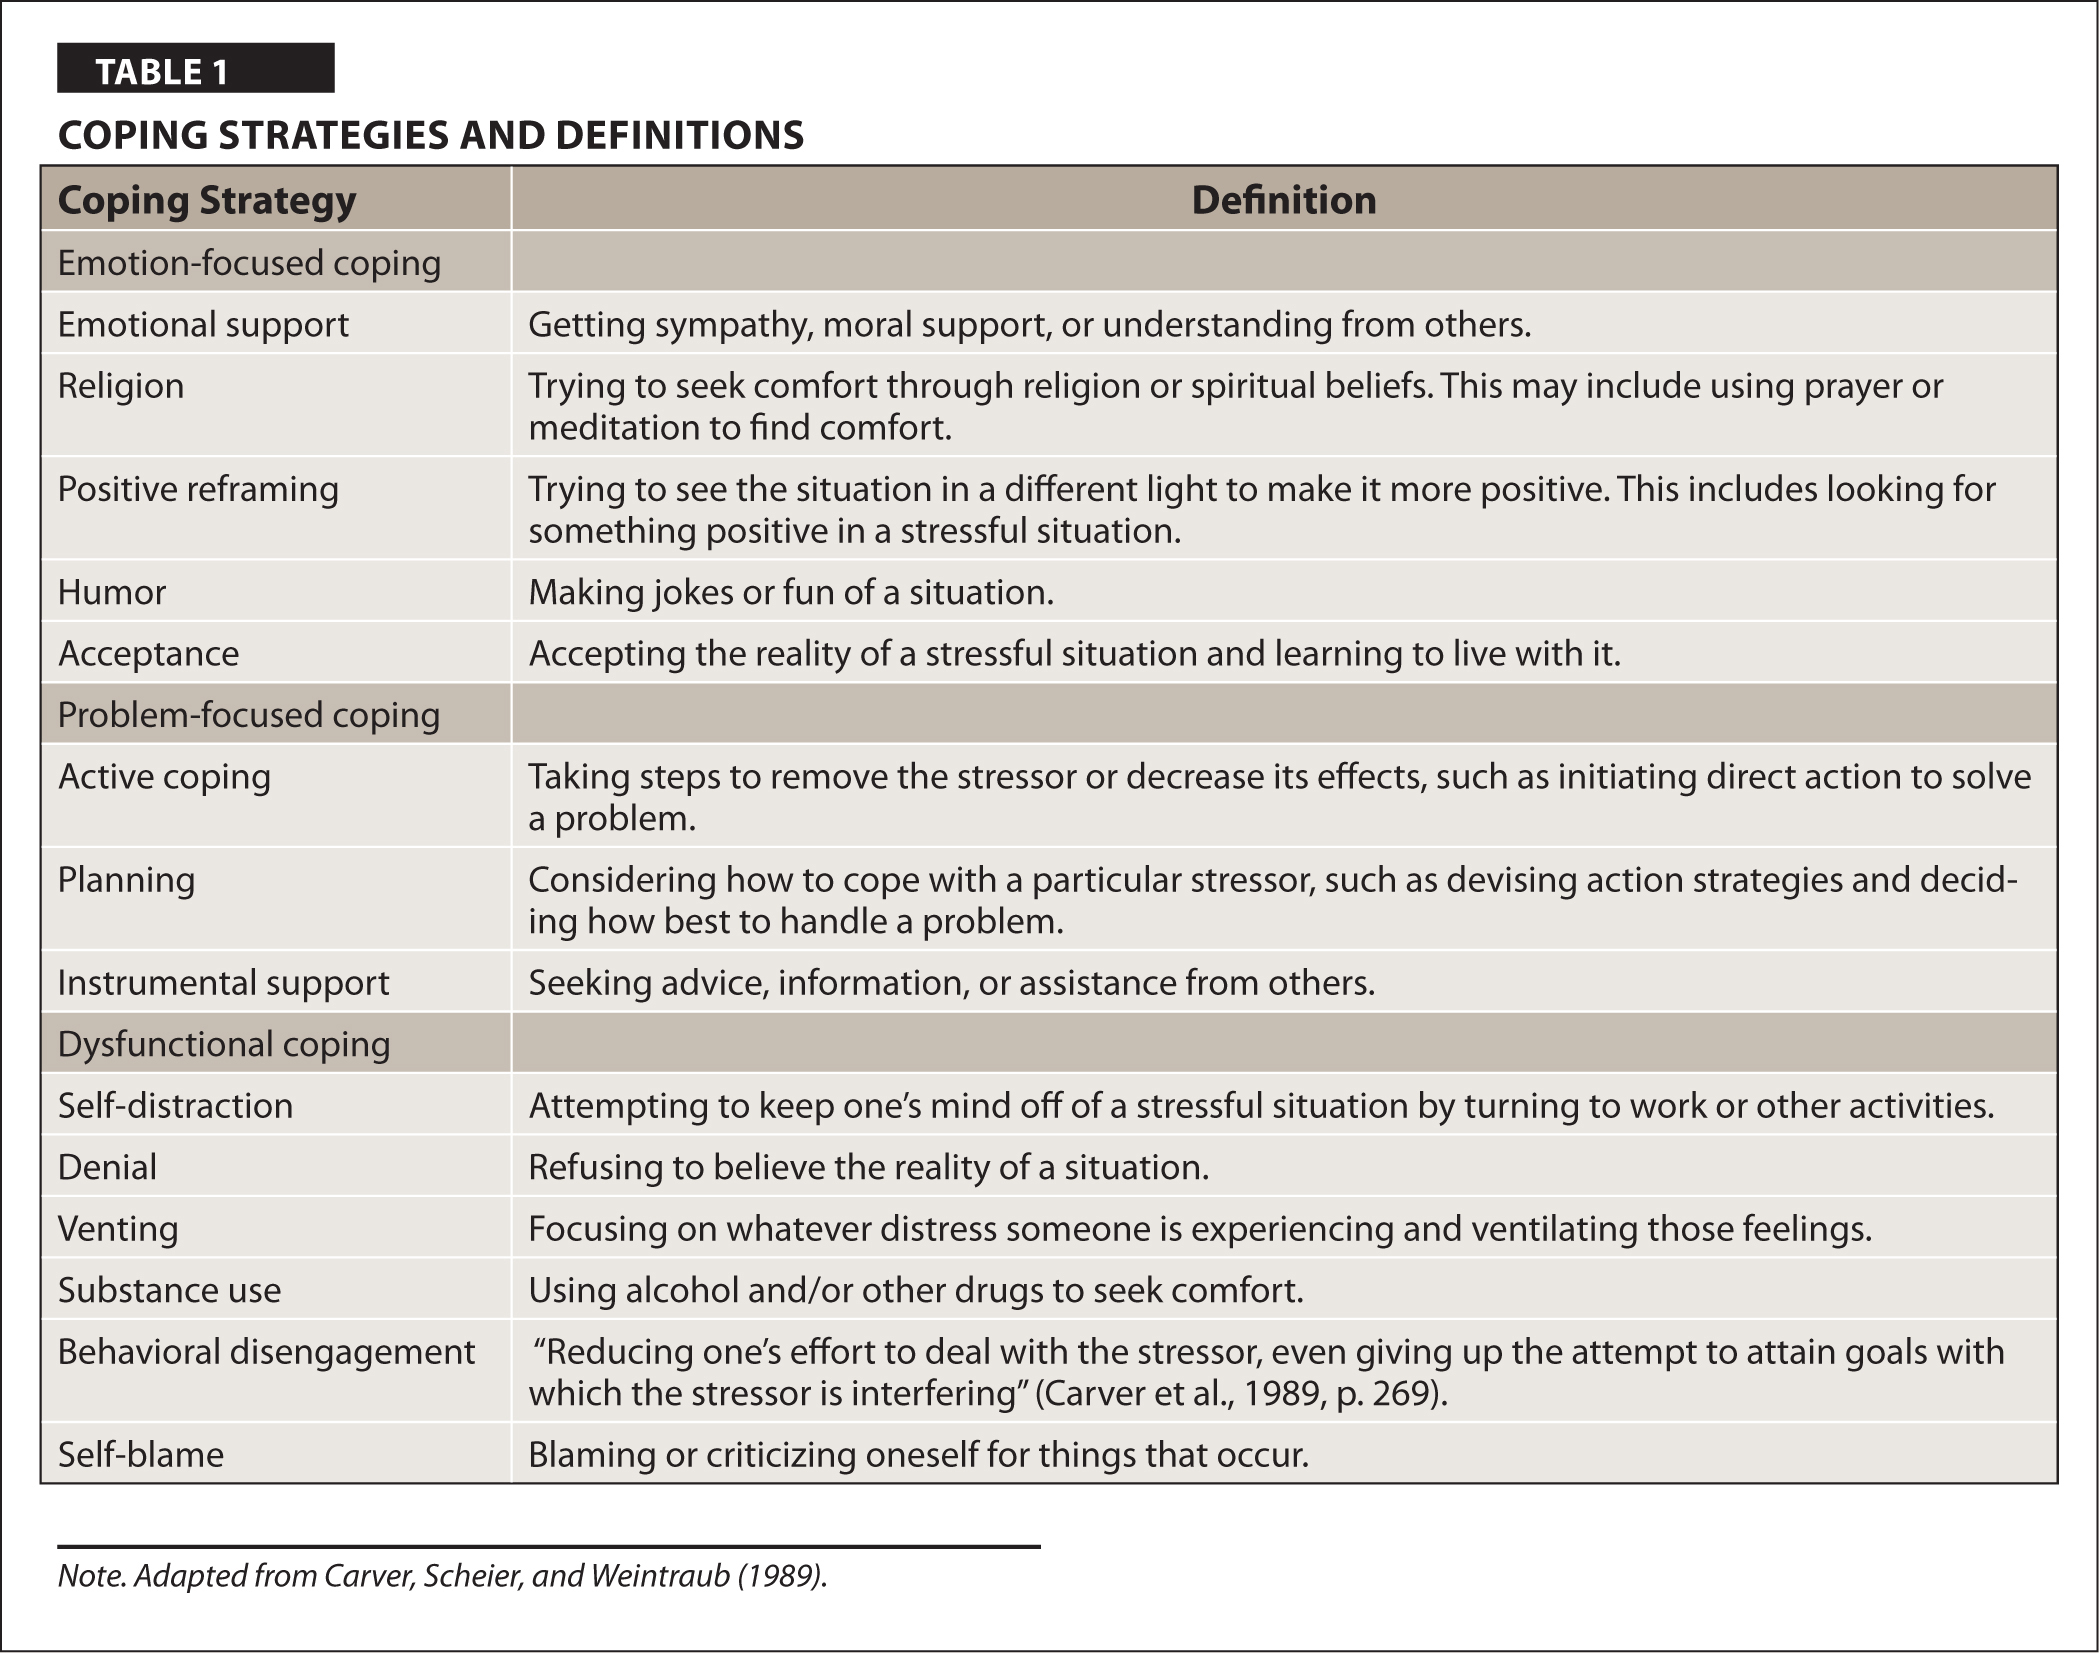 Coping Strategies and Definitions